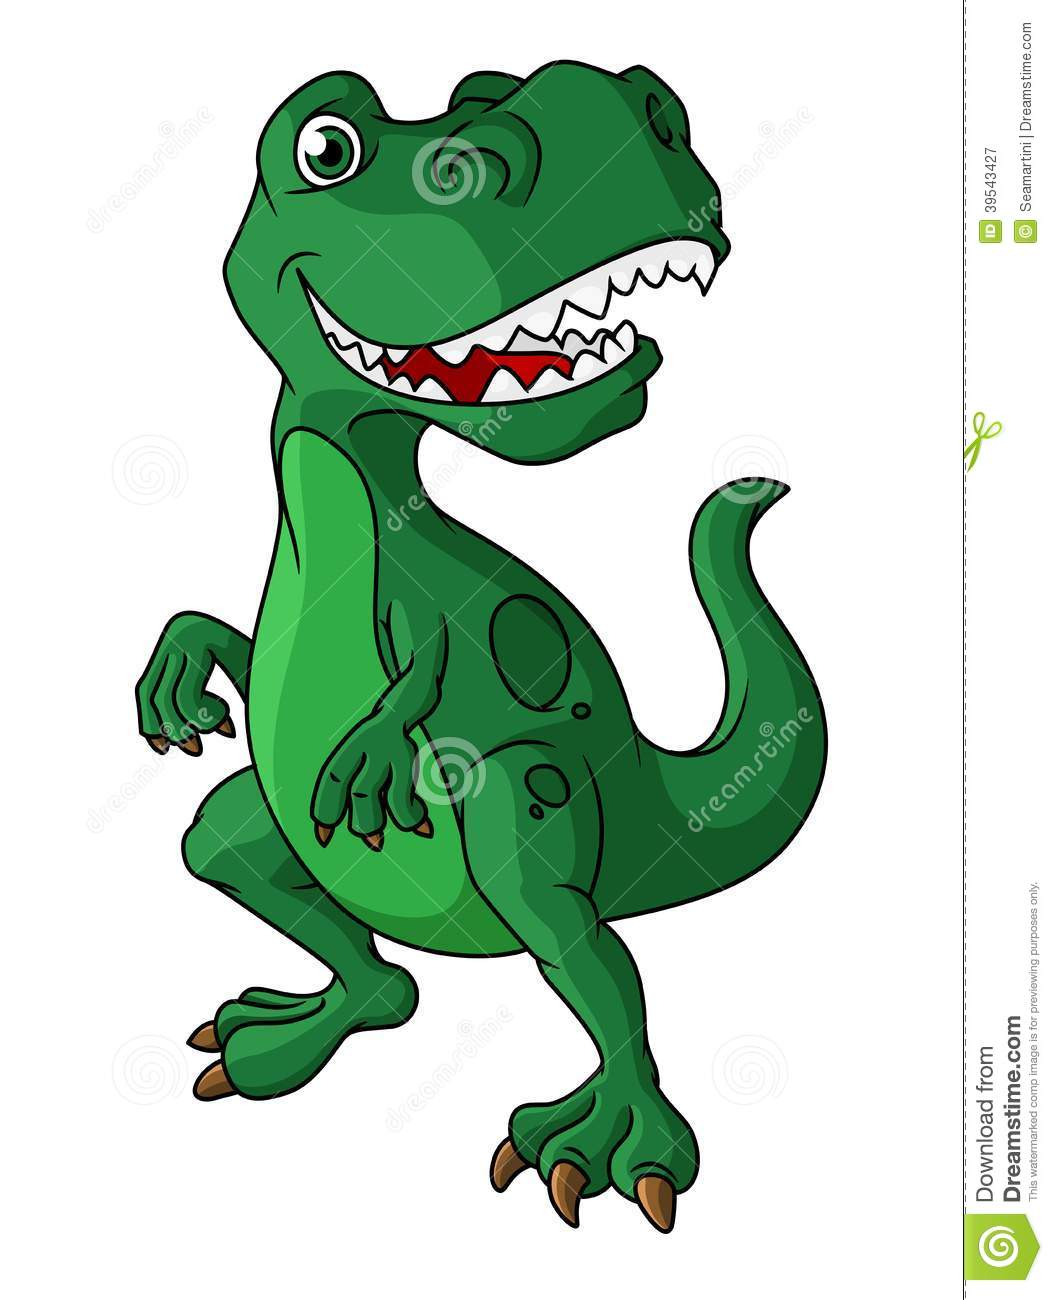 Green cartoon dinosaur with a mouth full of sharp teeth standing ...